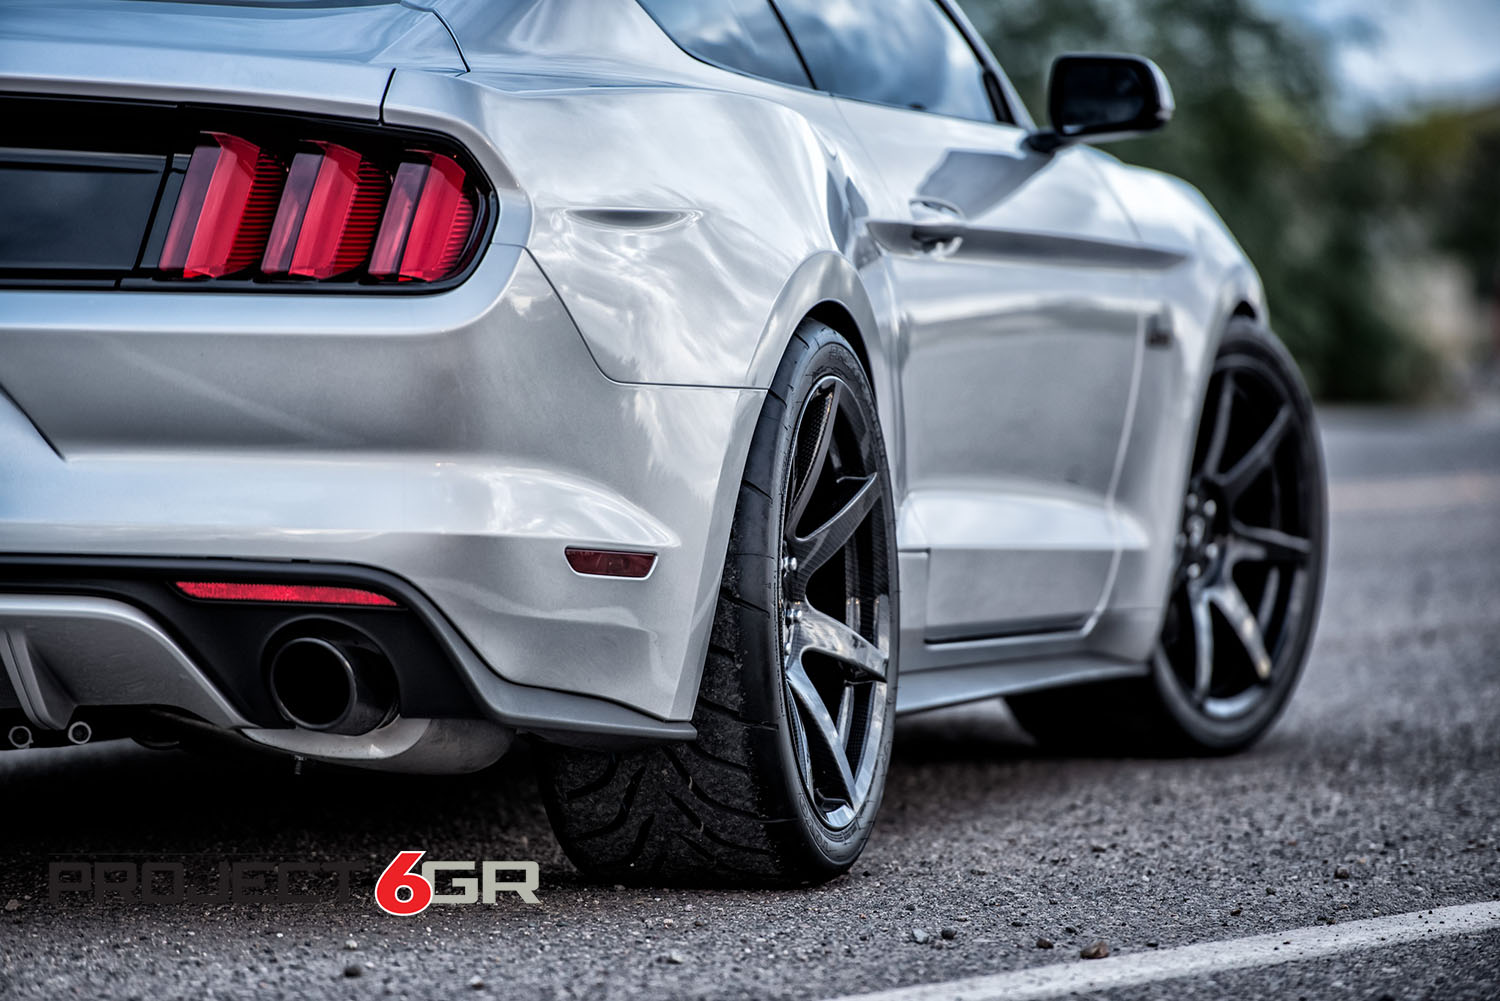 Project 6gr Wheels In Carbon Fiber Hydro Dip Finish